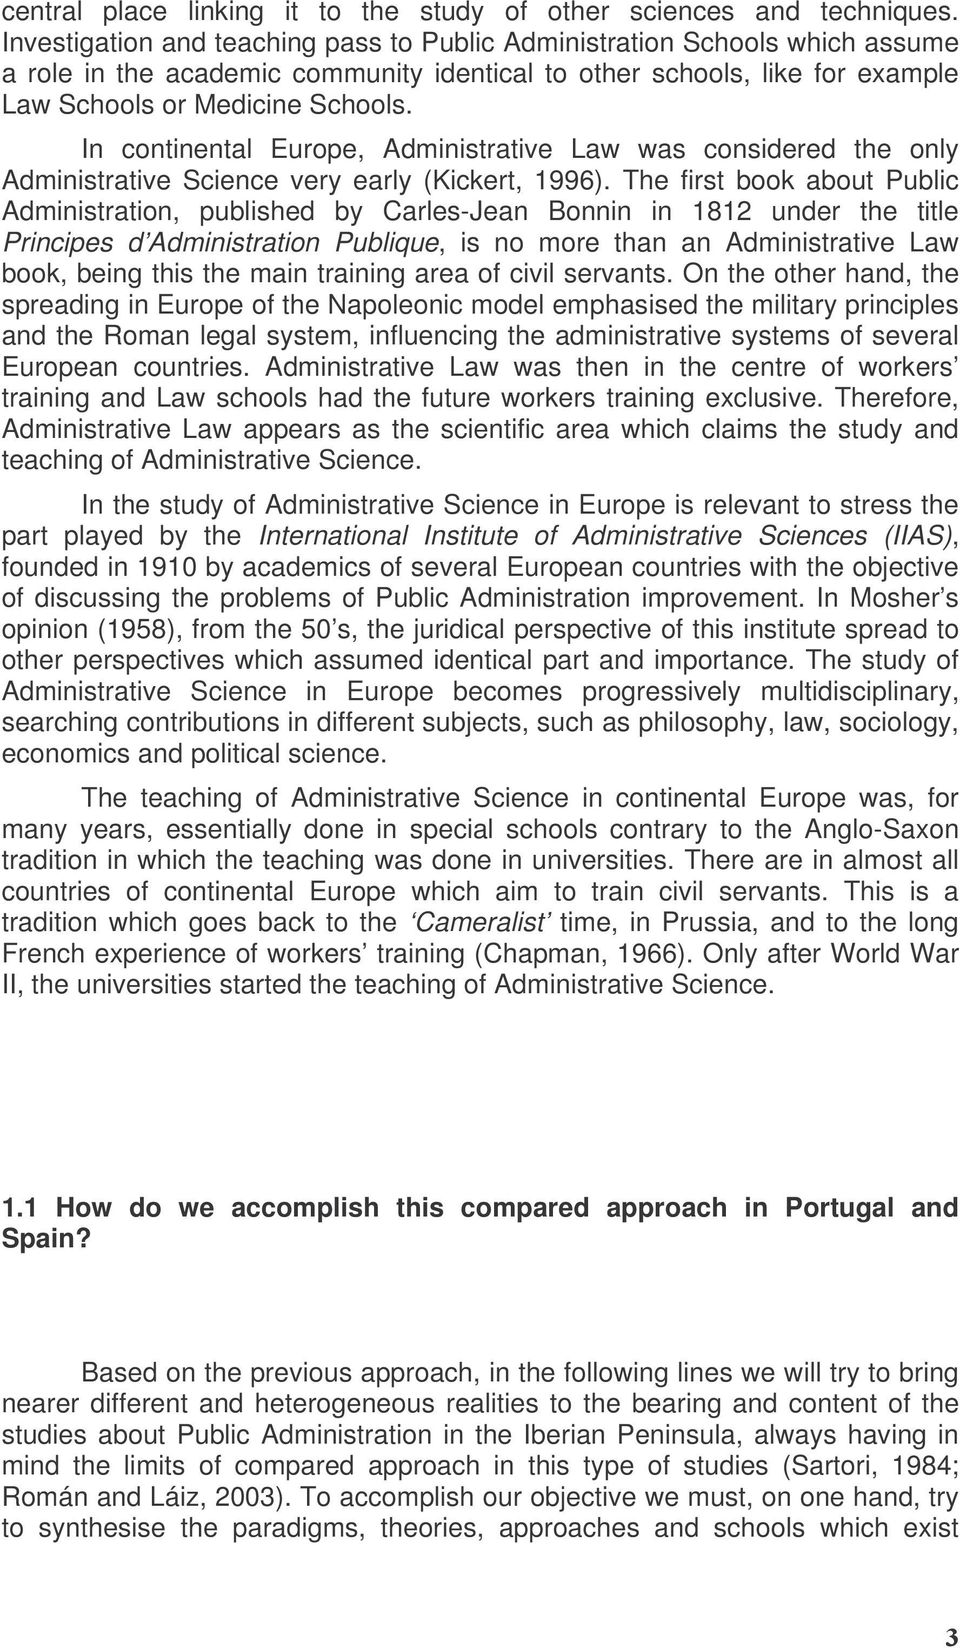 In continental Europe, Administrative Law was considered the only Administrative Science very early (Kickert, 1996).